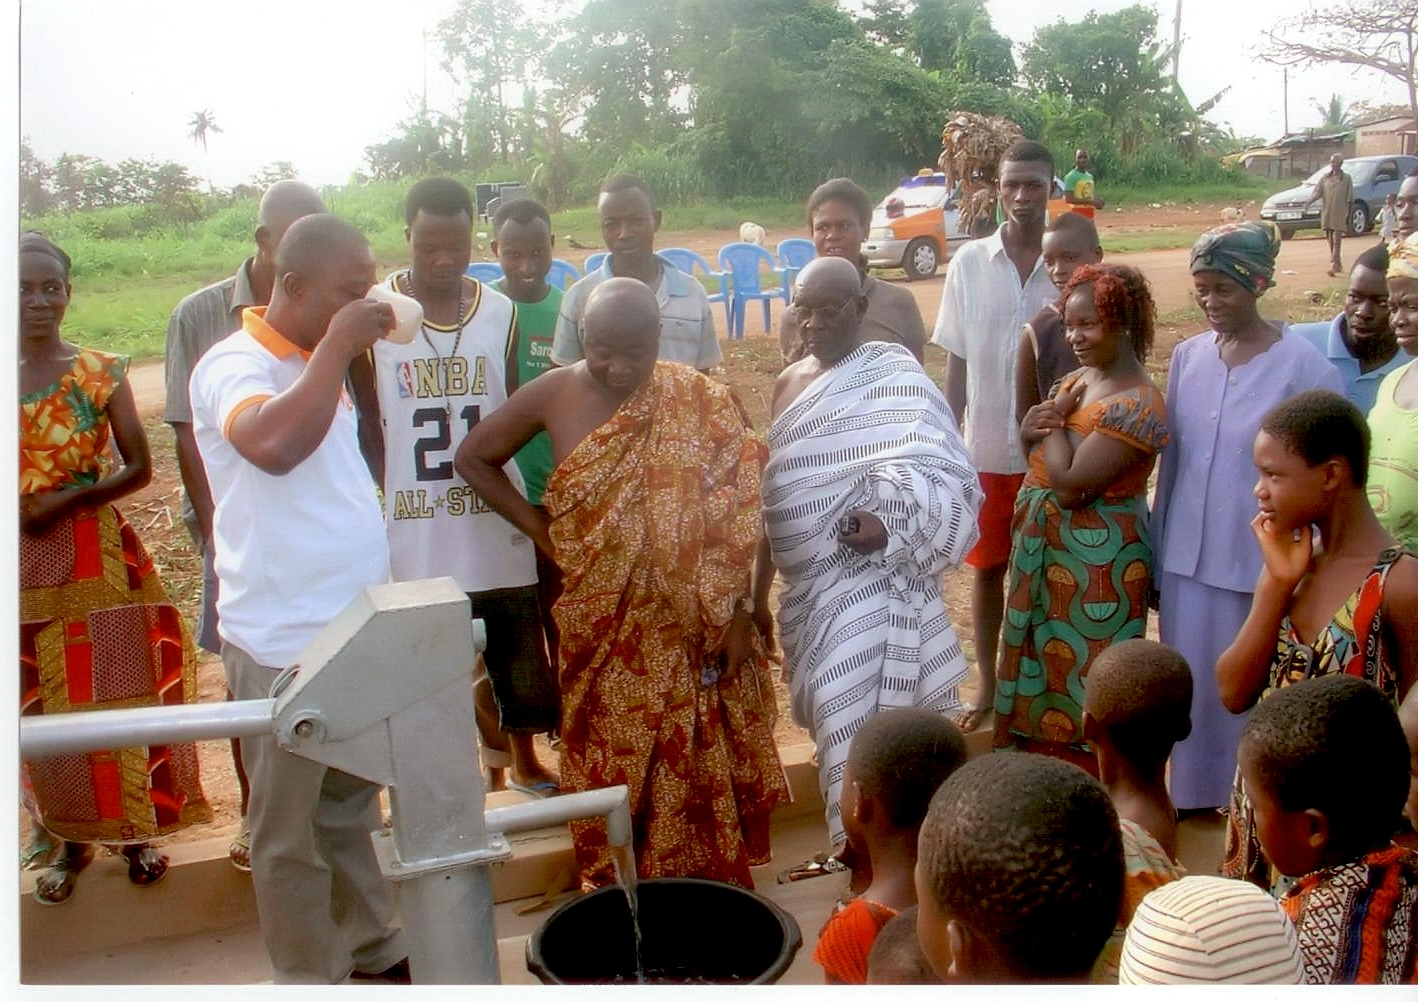 THE ASSEMBLY MAN TESTING THE WATER FROM THE BOREHOLE